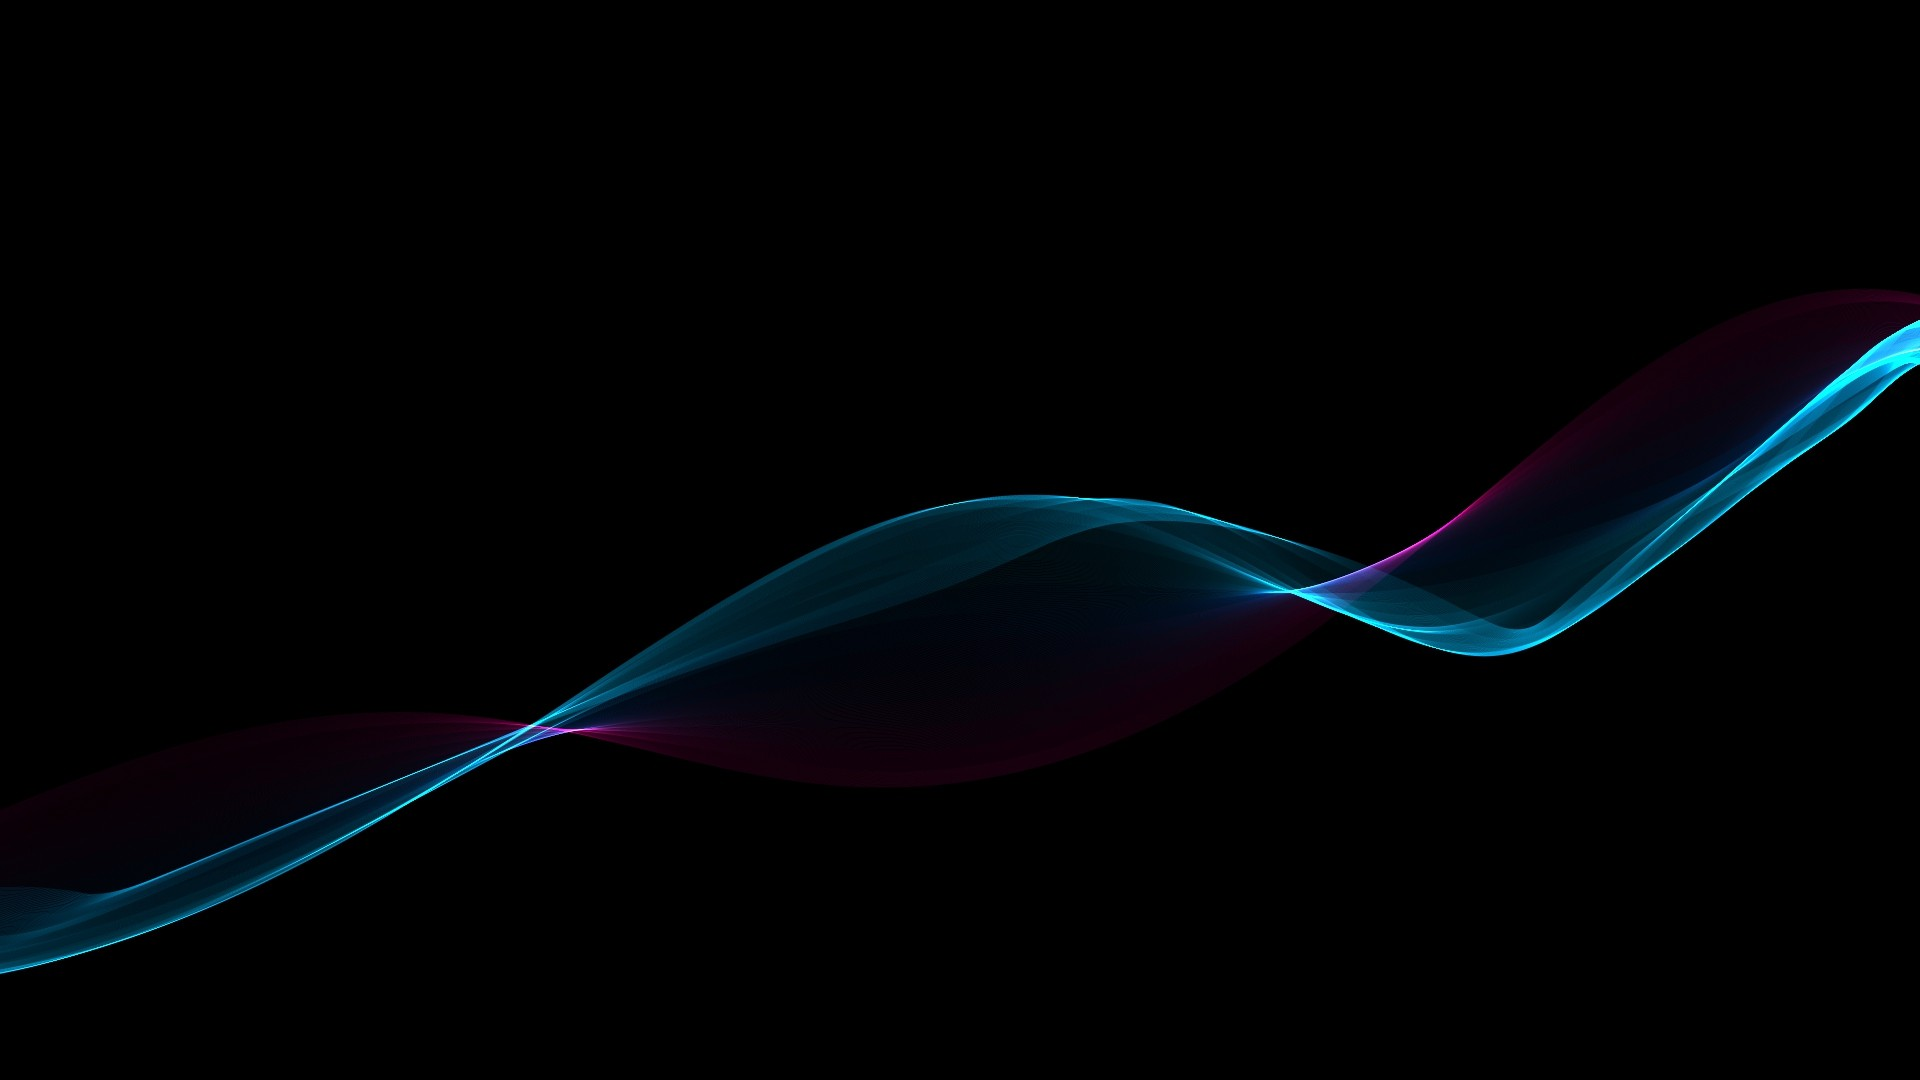 Black-Abstract-Beautiful-High-Resolution-Quality-1920x1080-px-KB-wallpaper-wp3803201